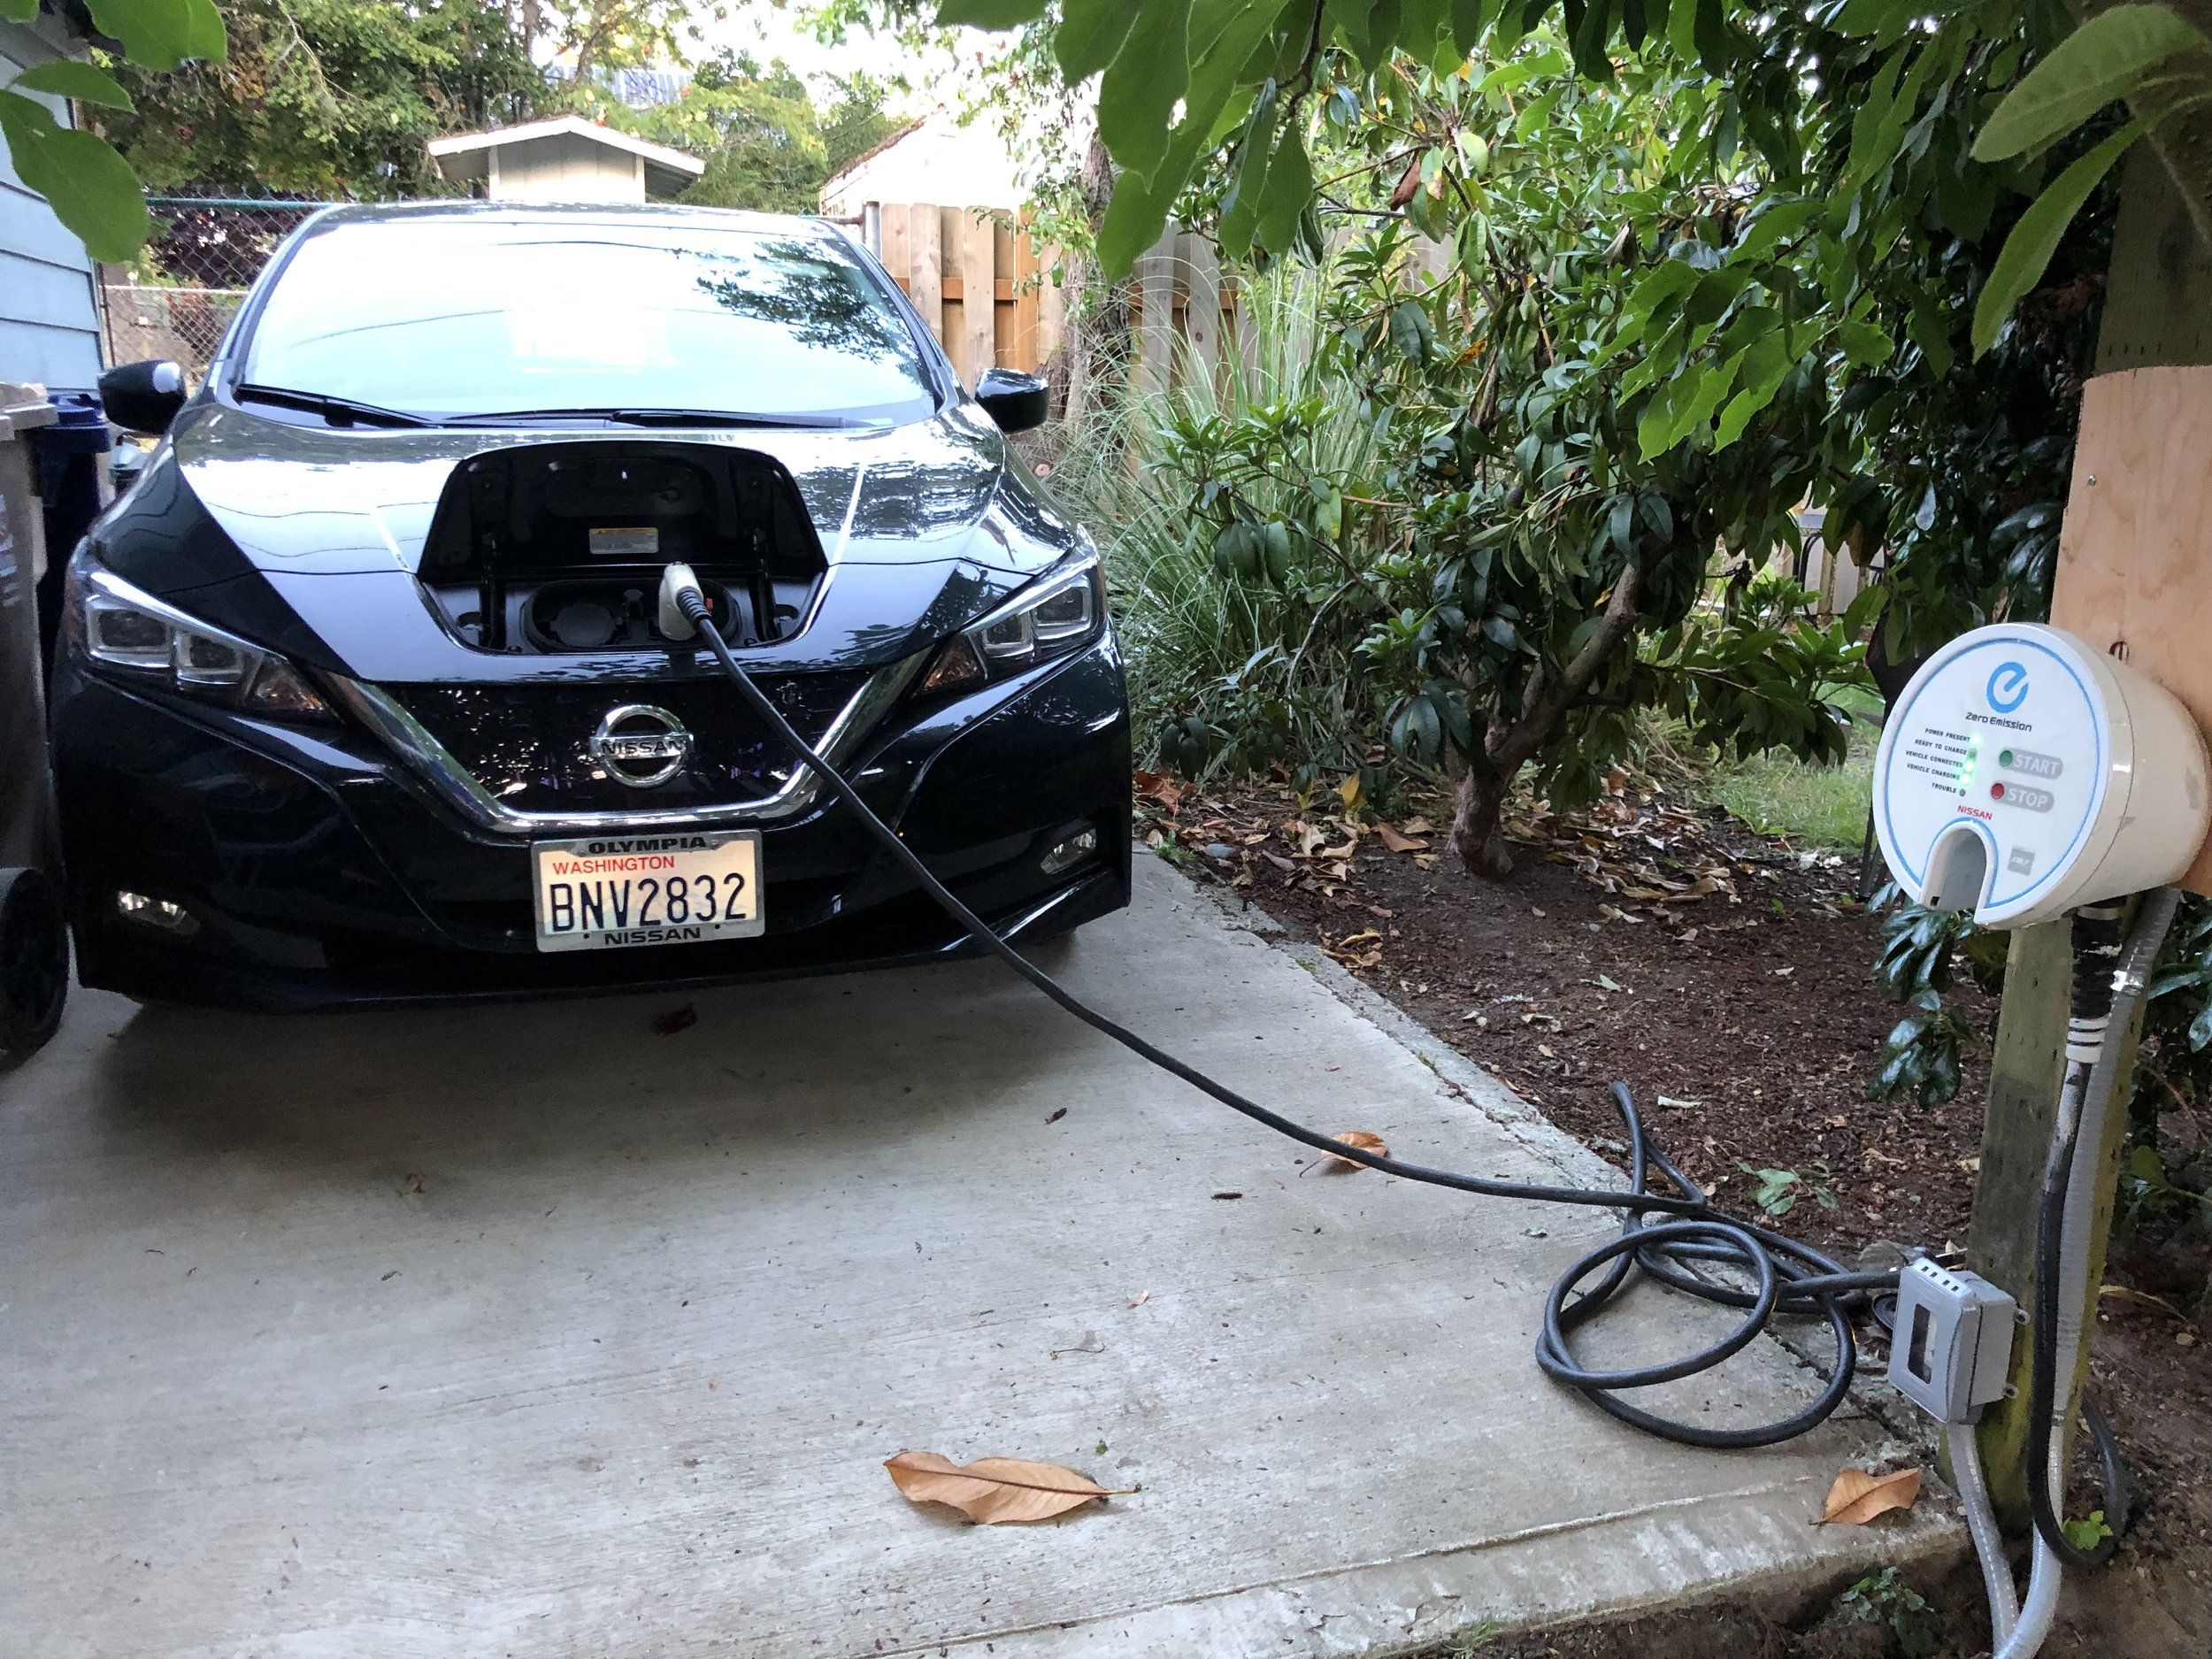 After charging my car using a 110v outlet and extension cord for several months, I eventually wired up a used 220v charger in my back parking spot.